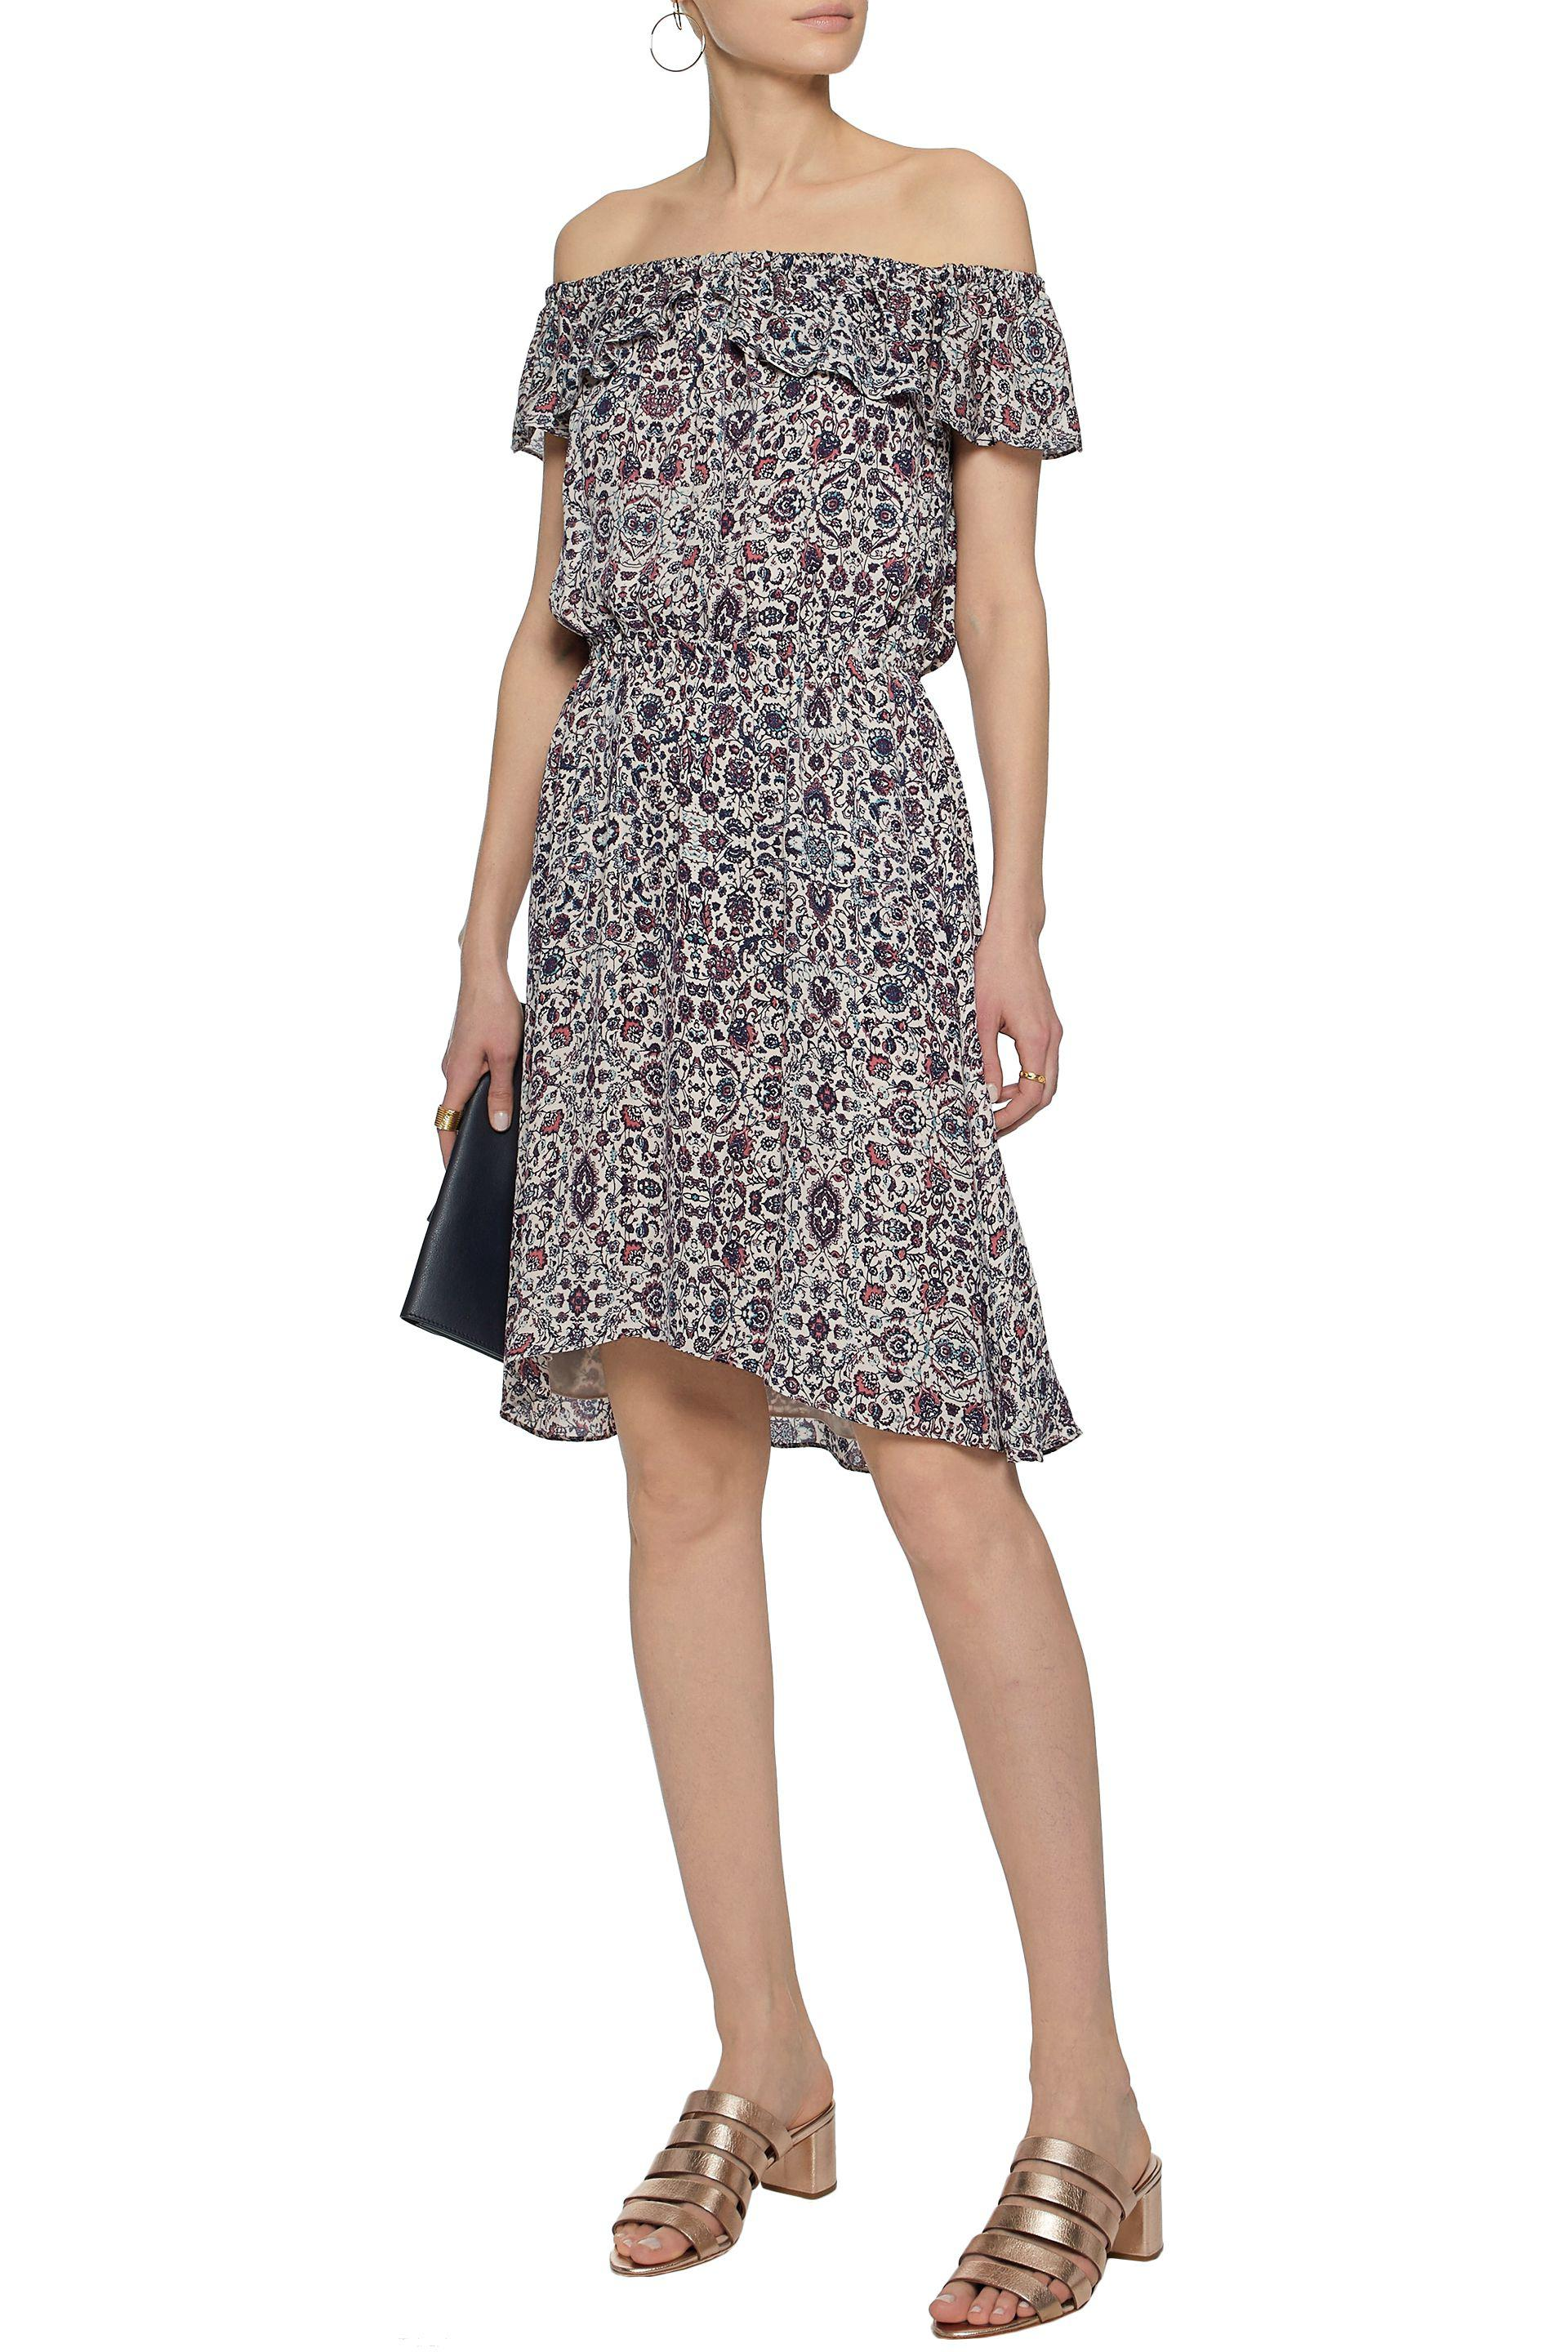 Lagence Woman Off-the-shoulder Ruffled Printed Silk-chiffon Dress Brick Size L L'agence